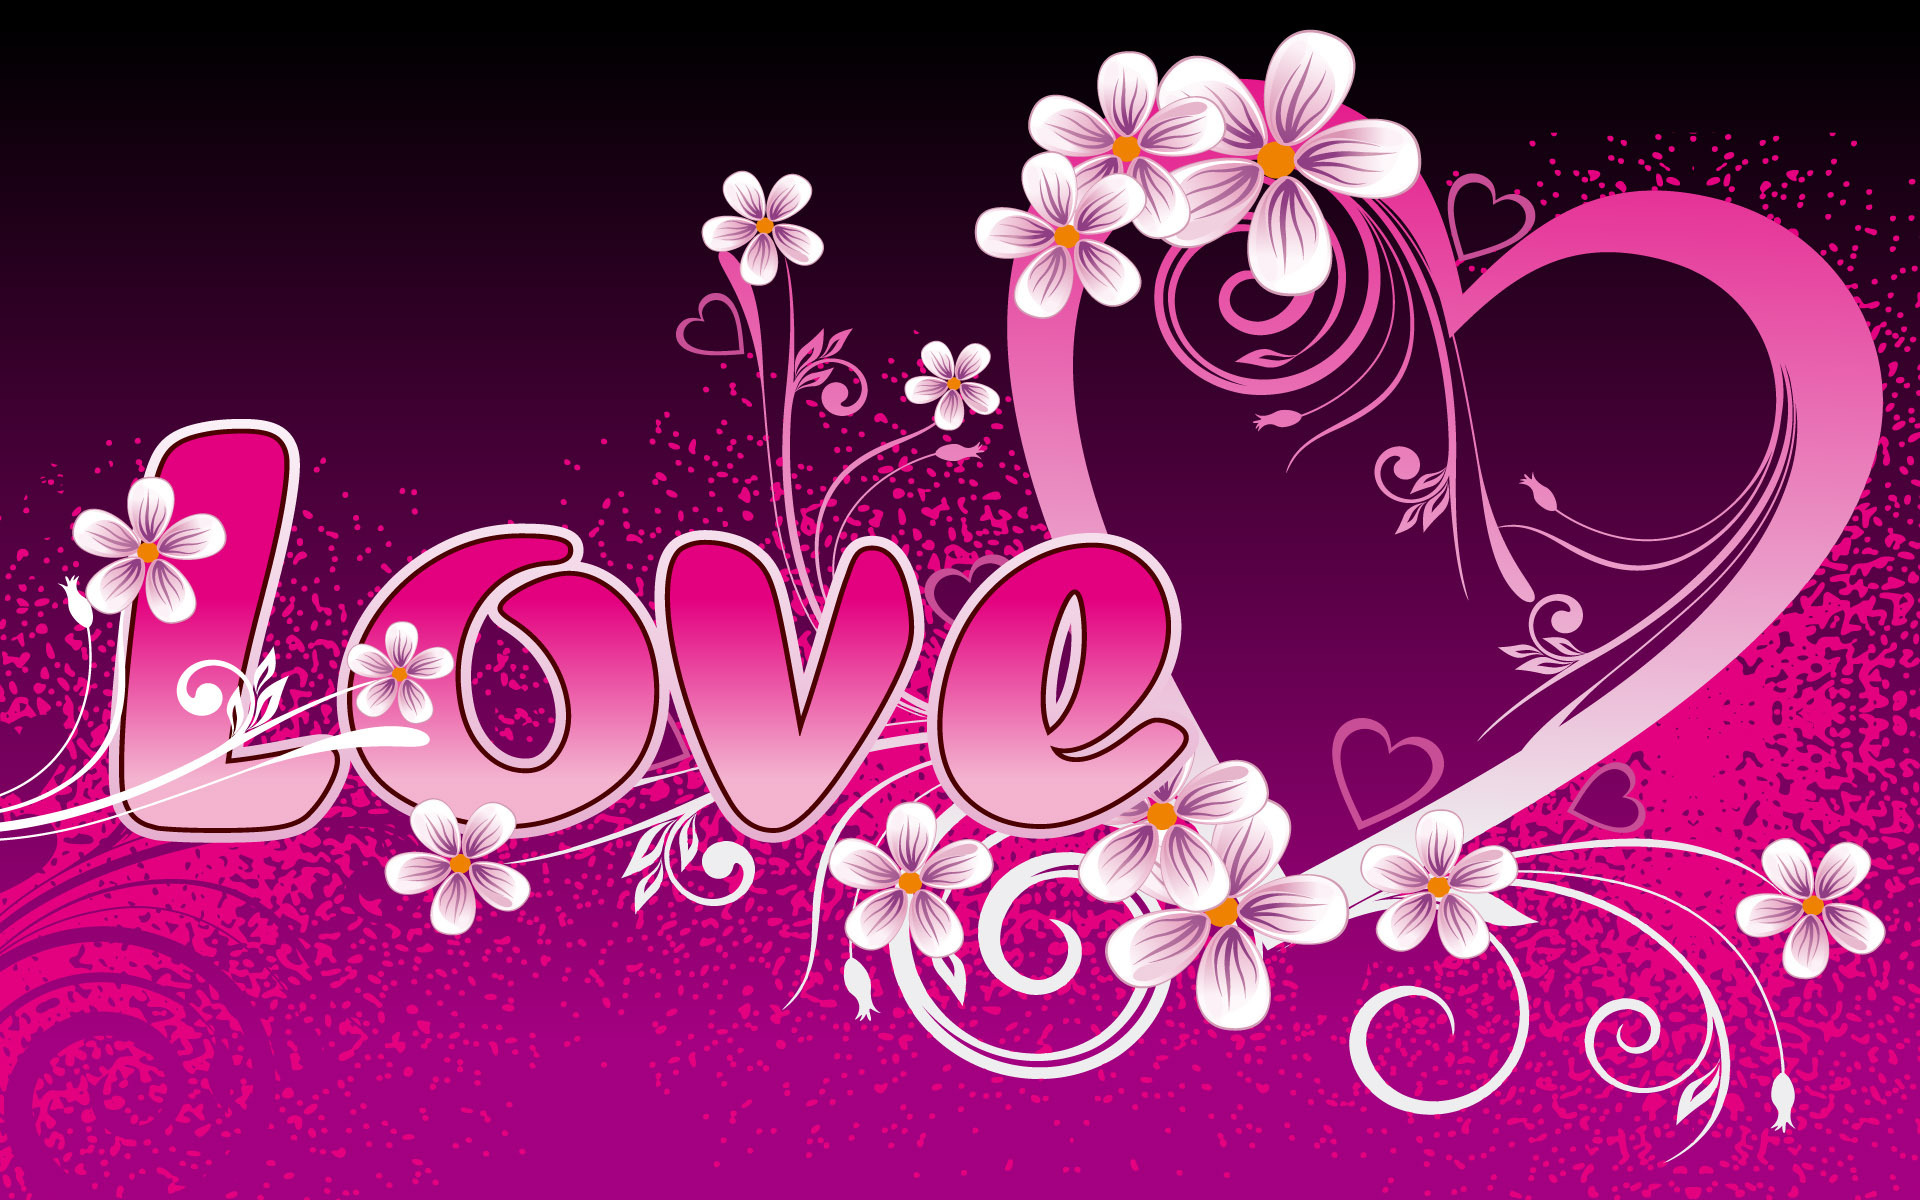 Love Z Wallpaper : Love wallpaper - Love Wallpaper (4187641) - Fanpop